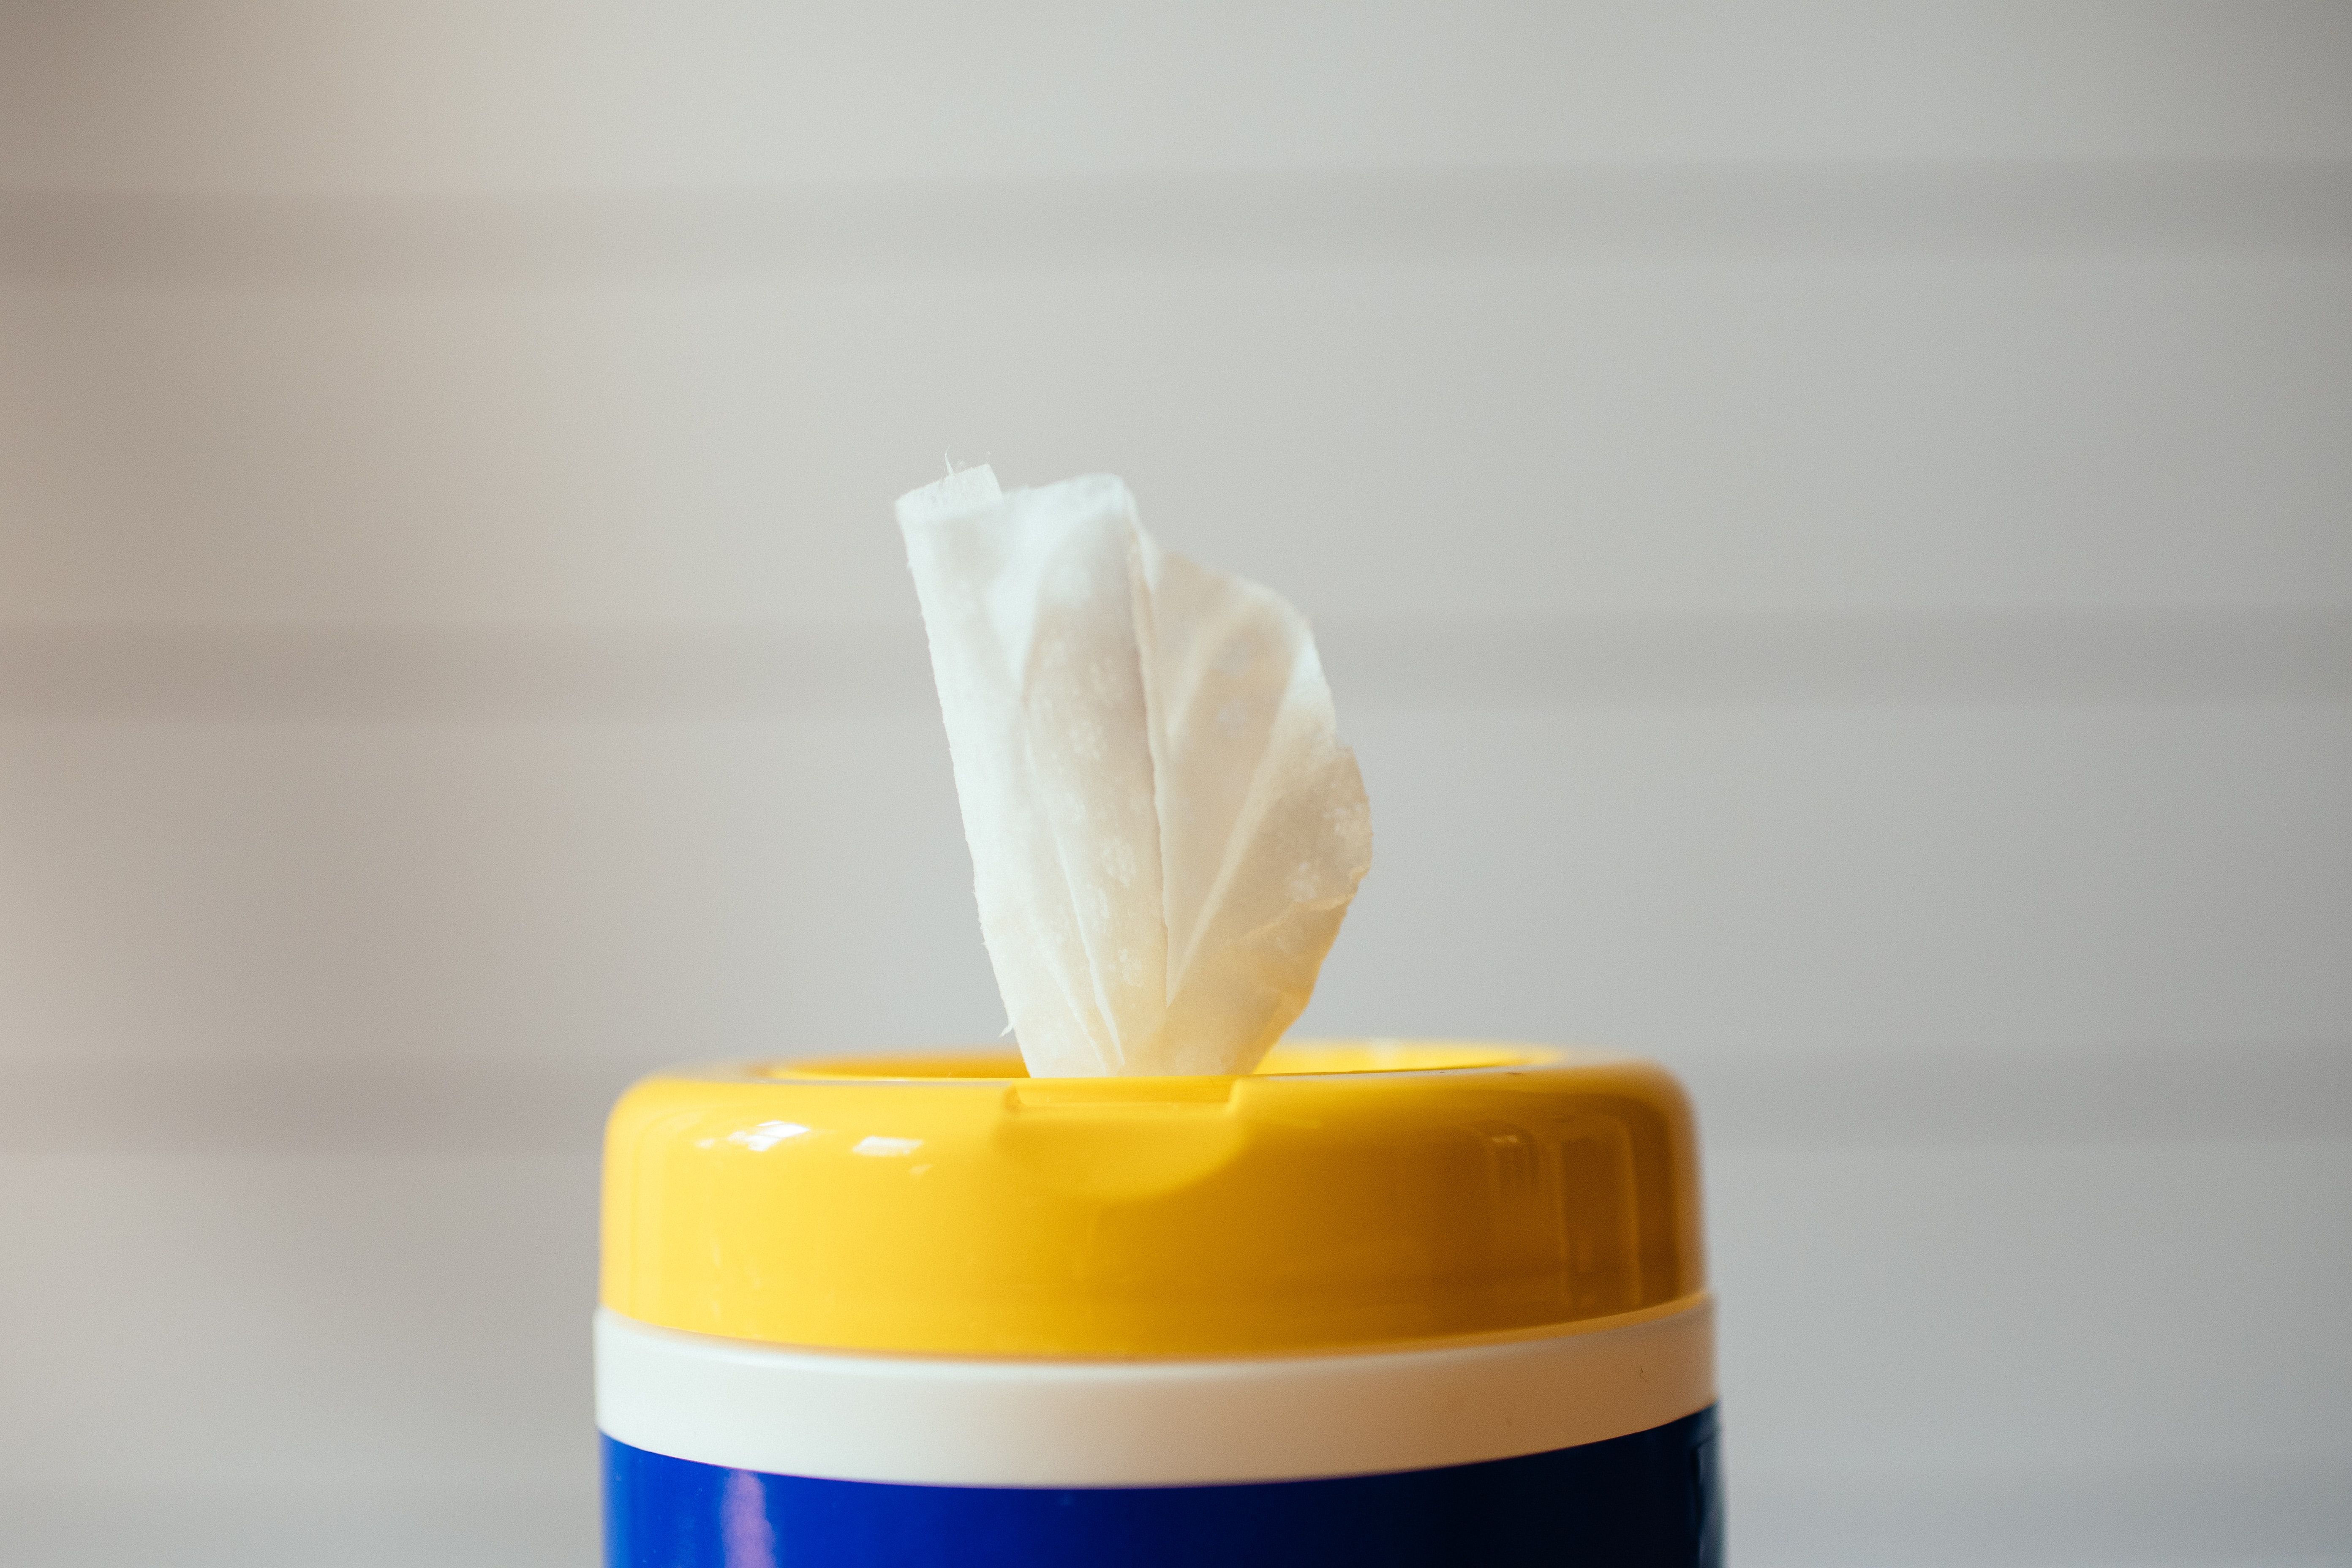 frequent cleaning using wipes